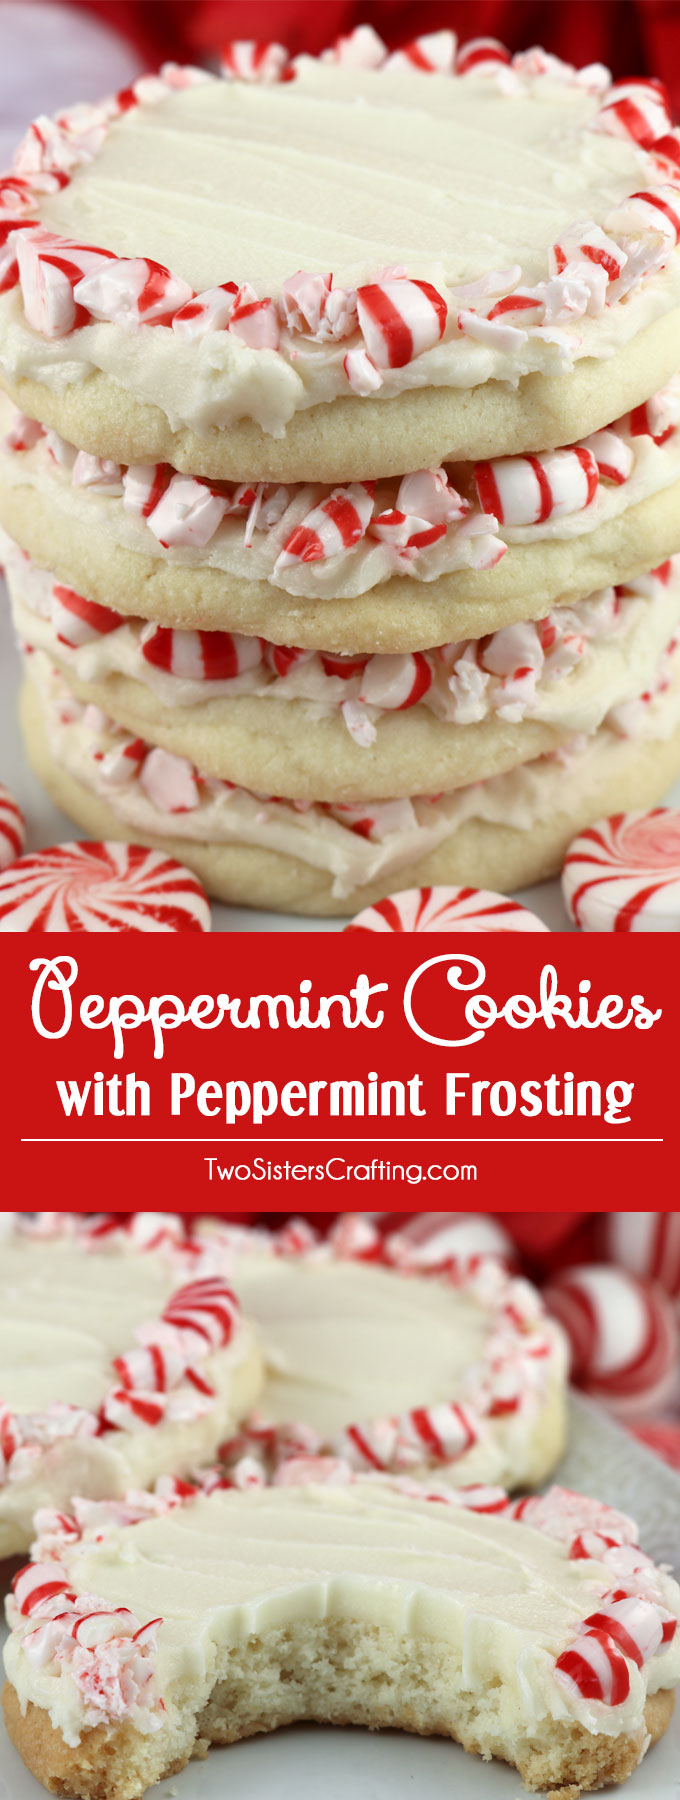 Peppermint Cookies with Peppermint Frosting - this light and buttery peppermint cookie topped with delicious peppermint frosting is a wonderful Christmas cookie recipe. This unique and tasty Christmas treat would be great Christmas dessert idea for a potluck dinner, a Holiday bake sale or a Christmas Cookie exchange. Pin this easy Holiday cookie recipe for later and follow us for more great Christmas Food ideas. #ChristmasCookies #ChristmasDesserts #ChristmasTreats